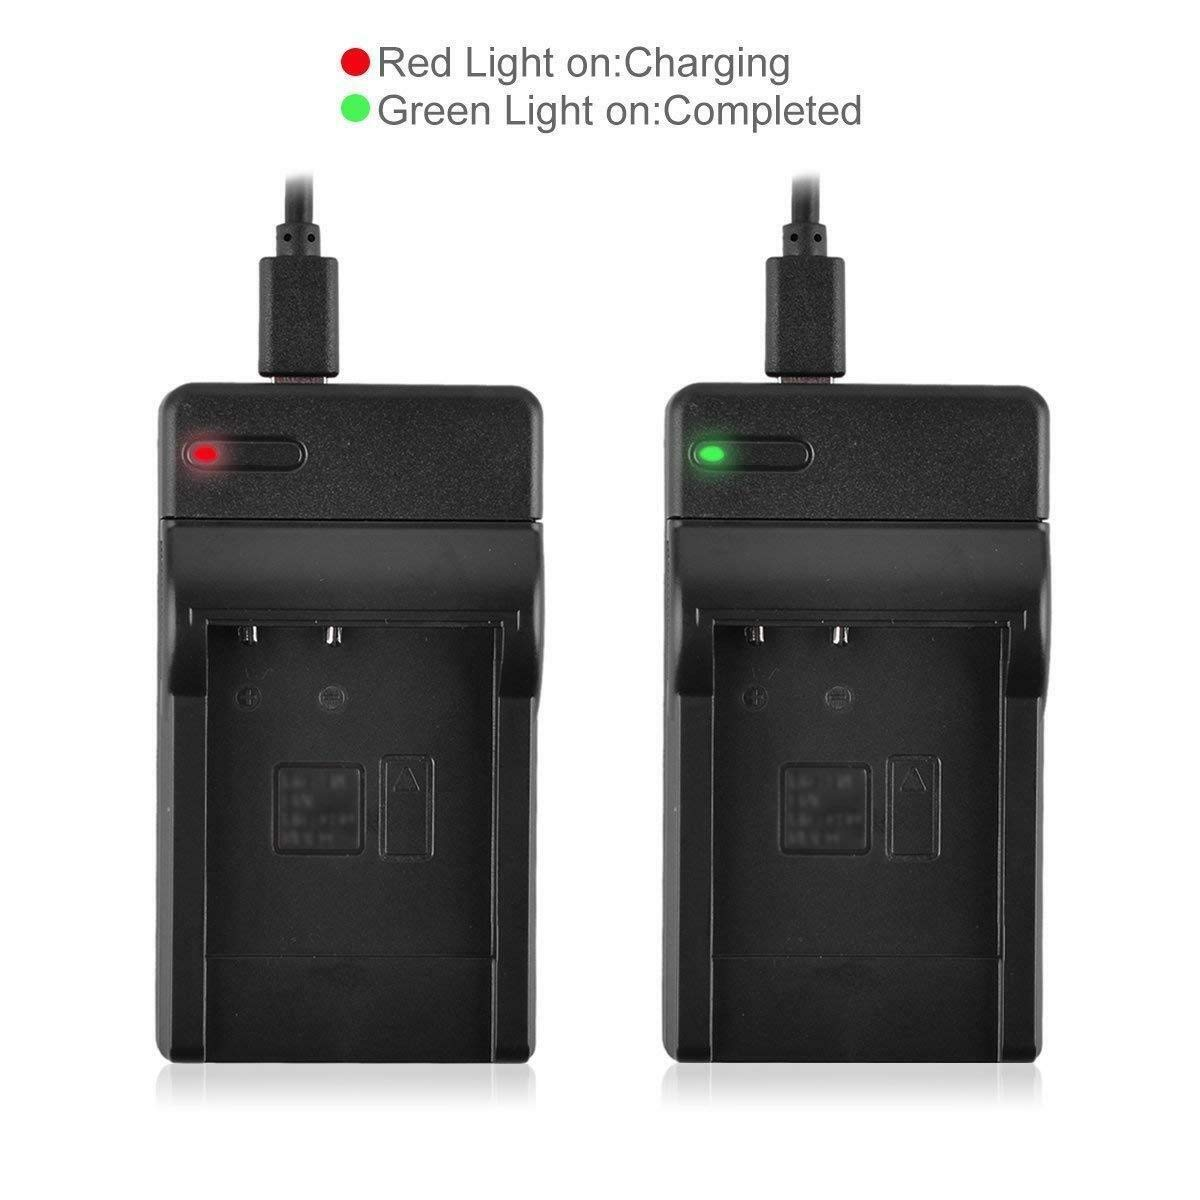 FDR-AX700E Handycam Camcorder FDR-AX100E FDR-AX700 Battery 2 Pack and LCD USB Battery Charger for Sony FDR-AX100